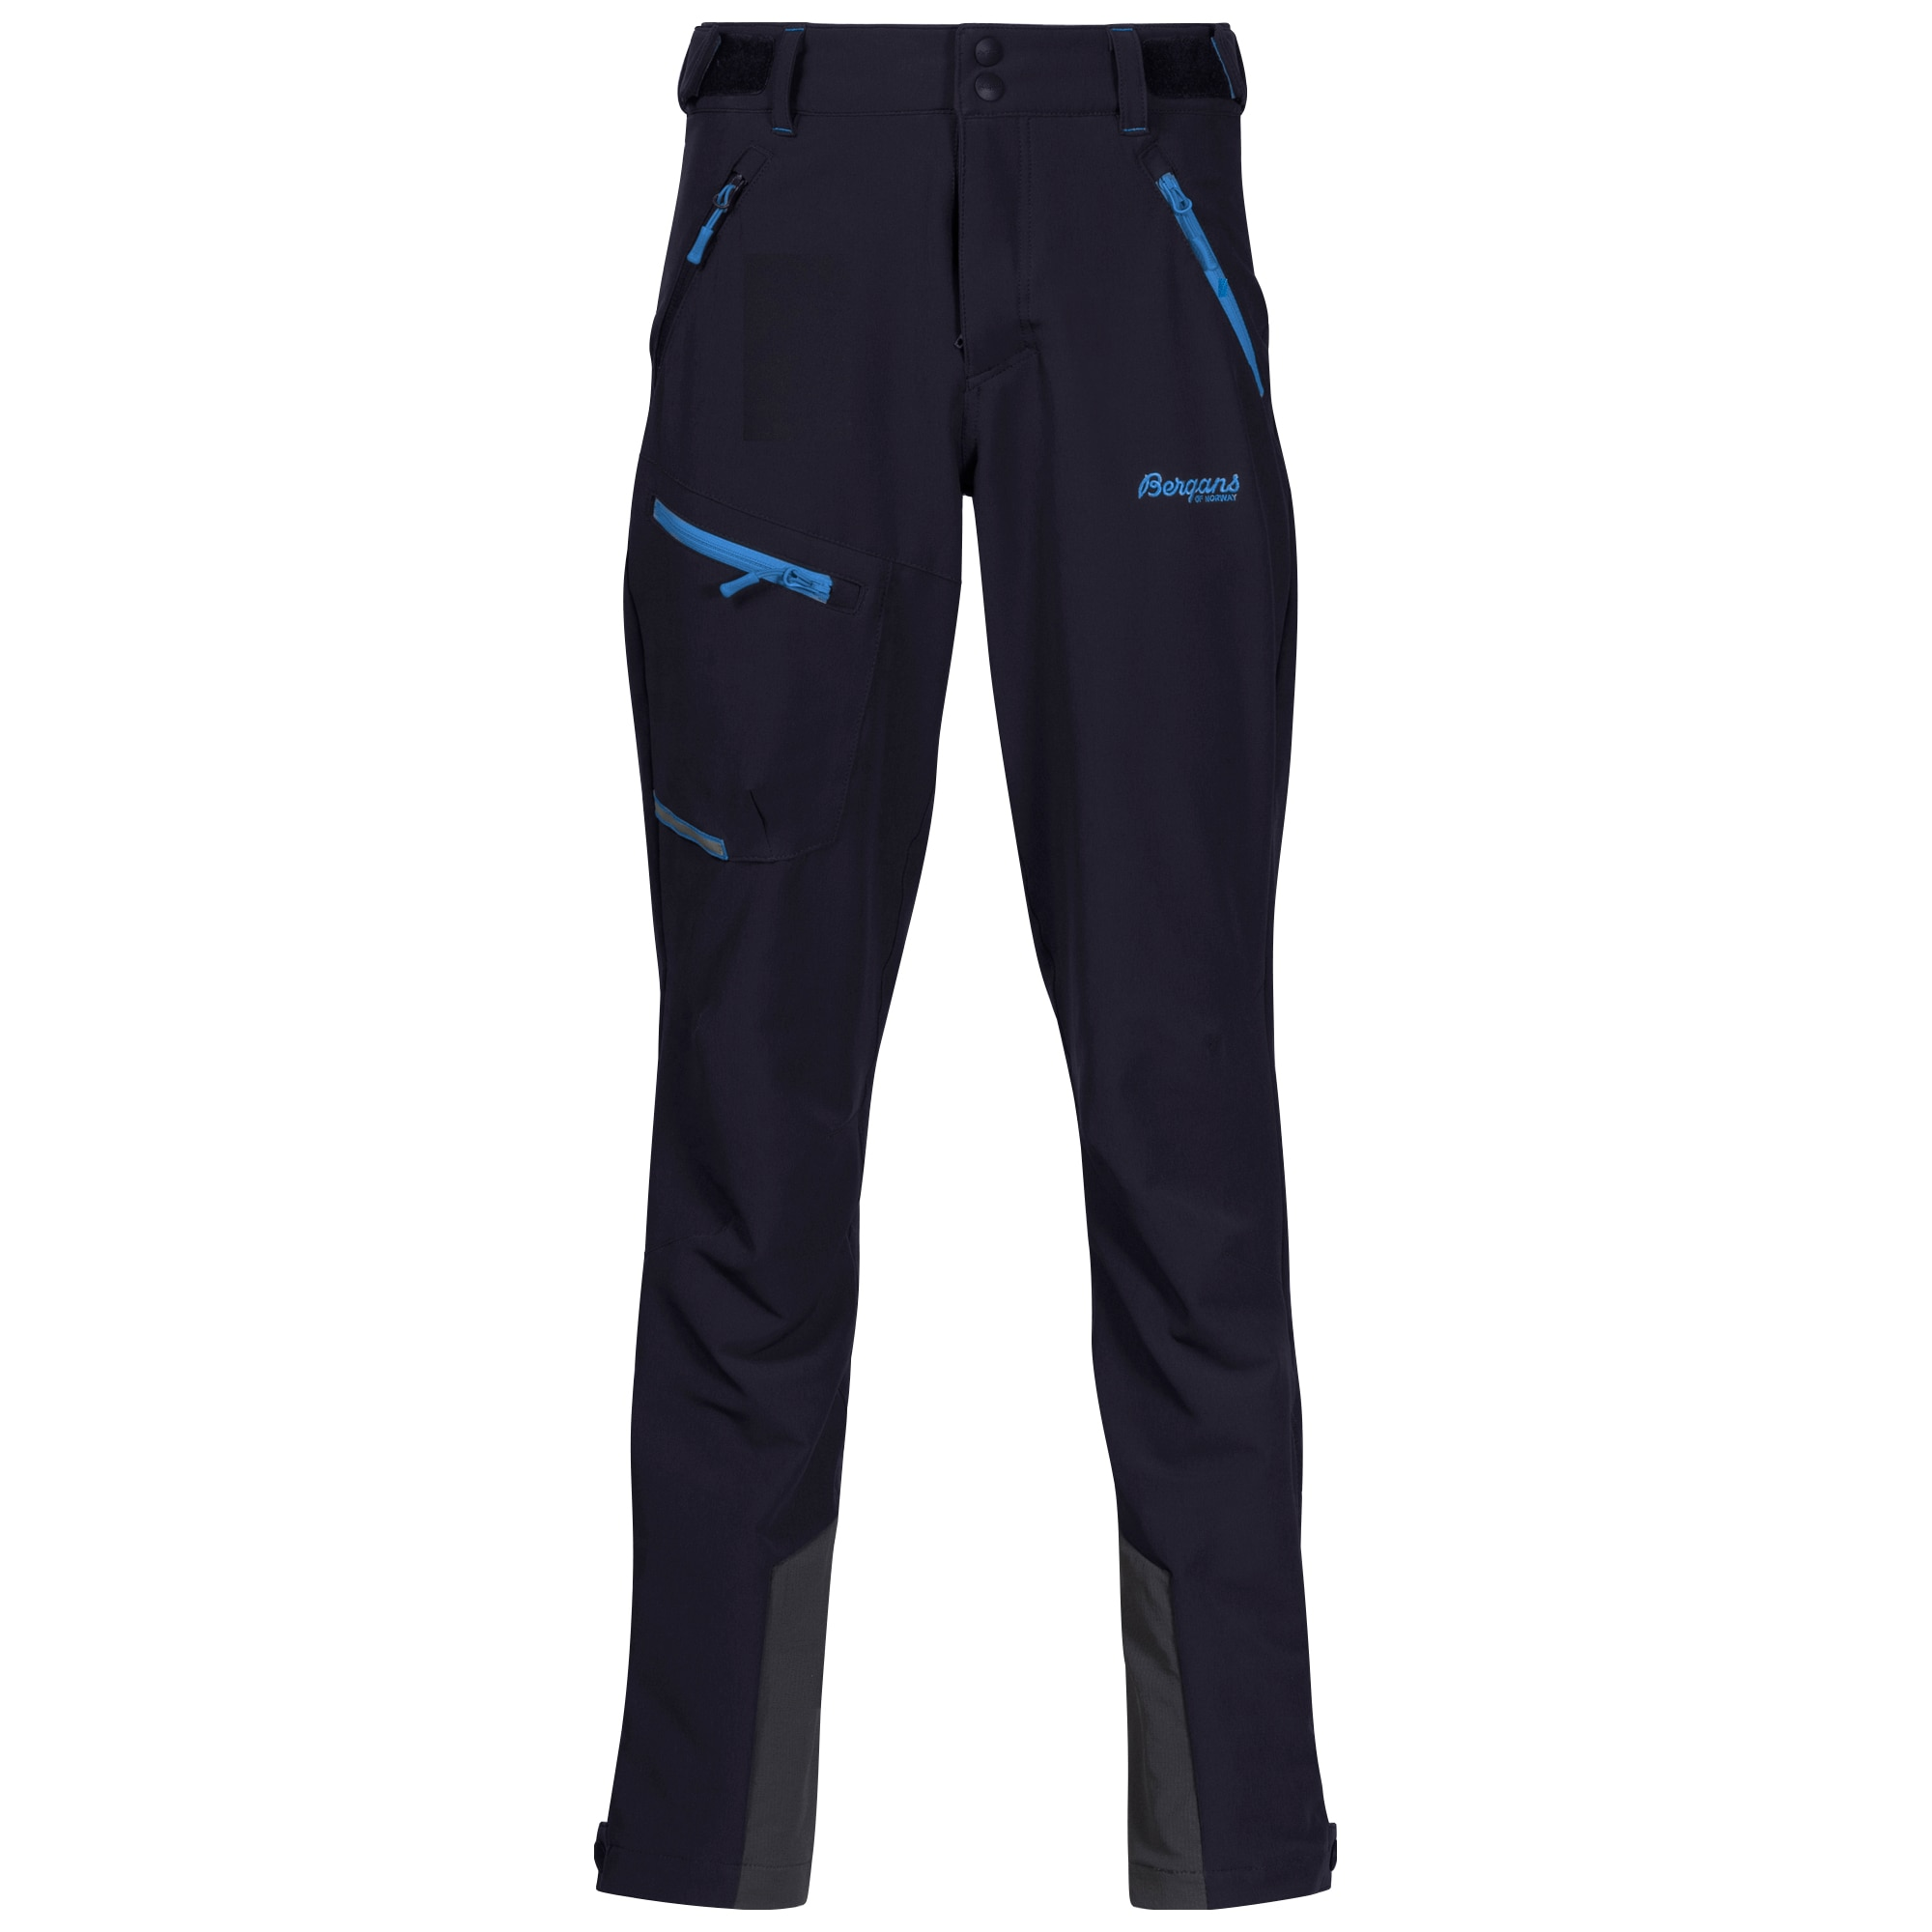 Sjoa Lt Softshell Youth Pants